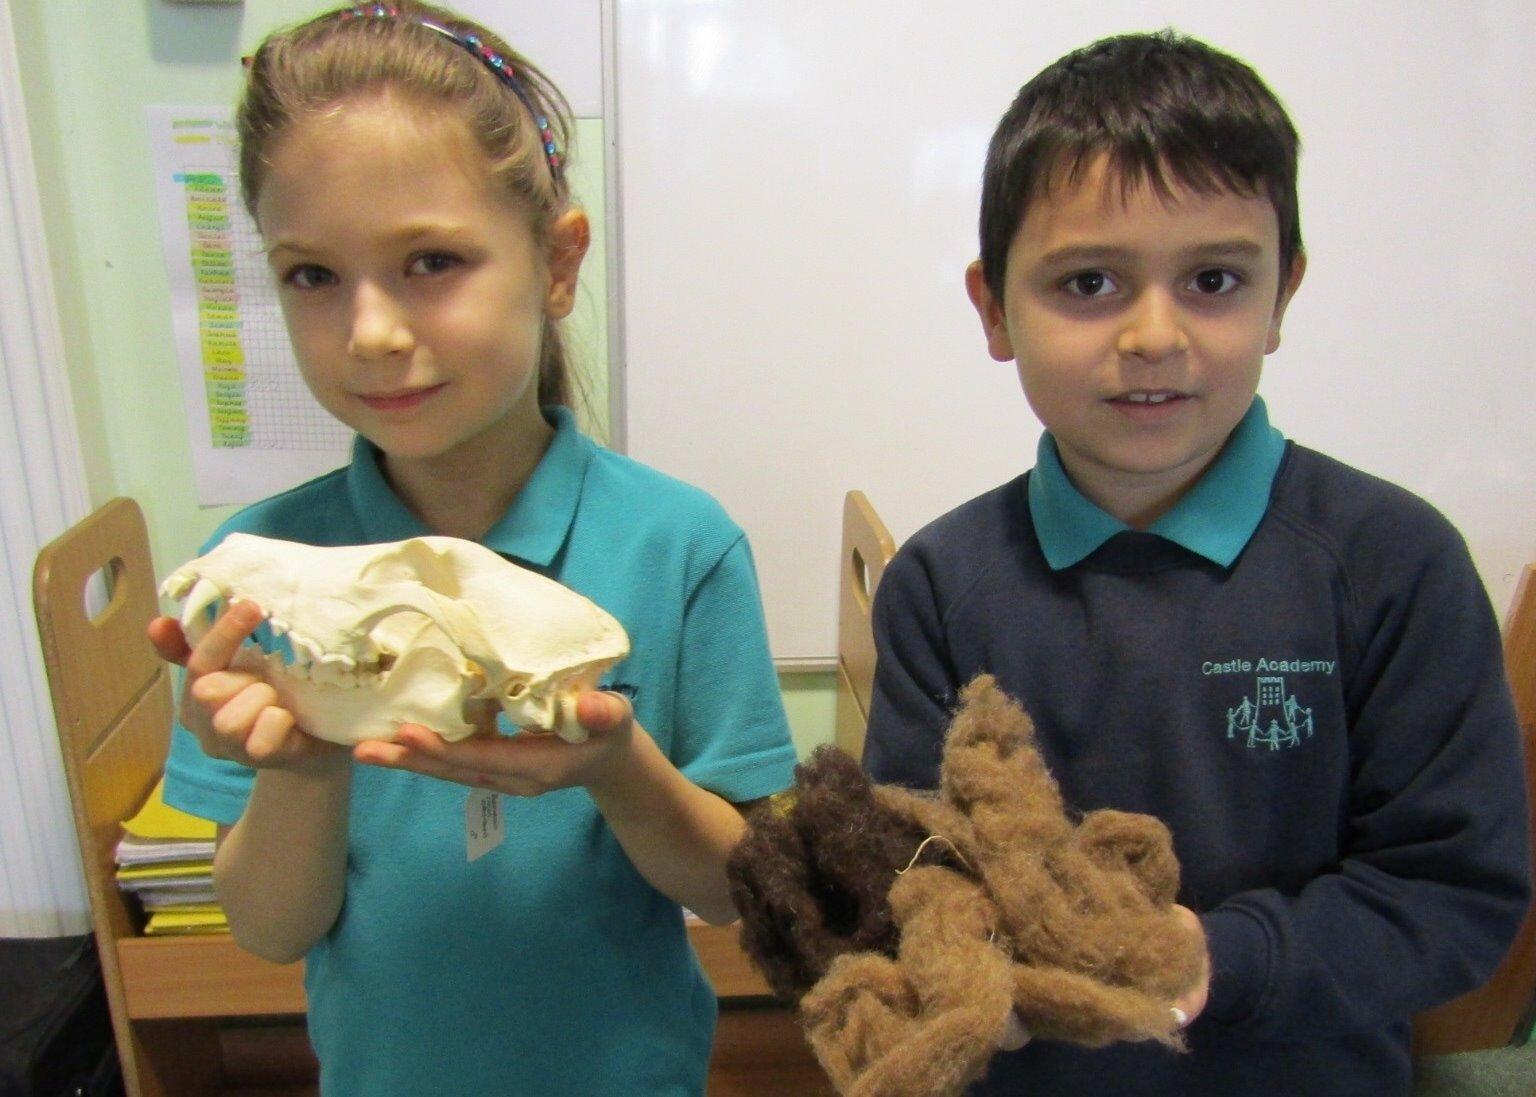 Castle Academy pupils step back in time for new archaeology sessions